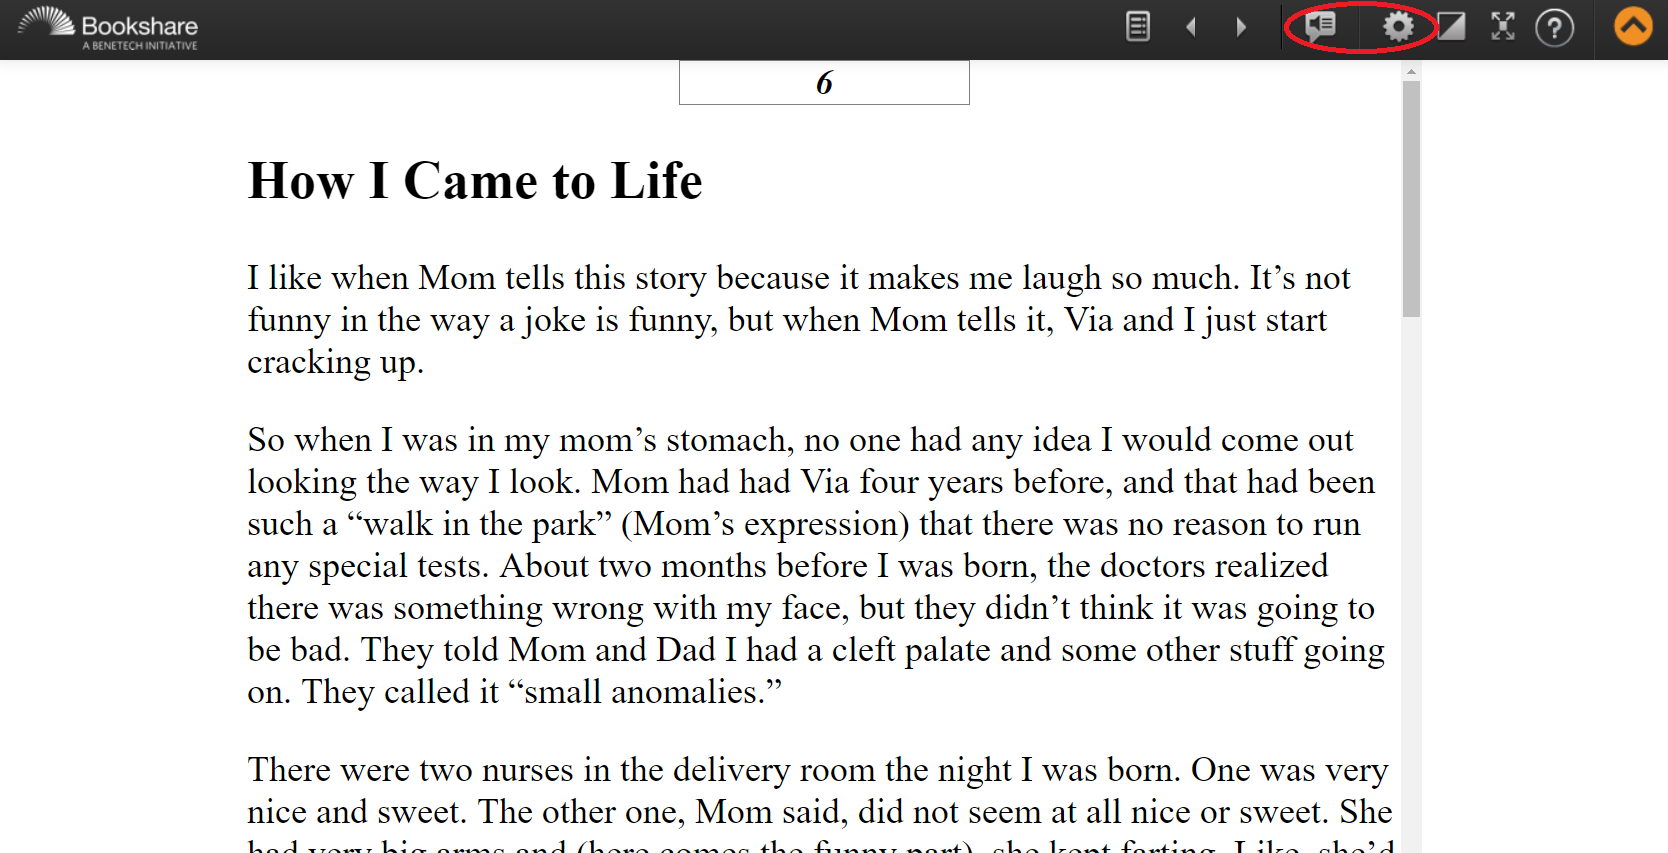 Screenshot of a book in web reader with the speaker and settings icons circled